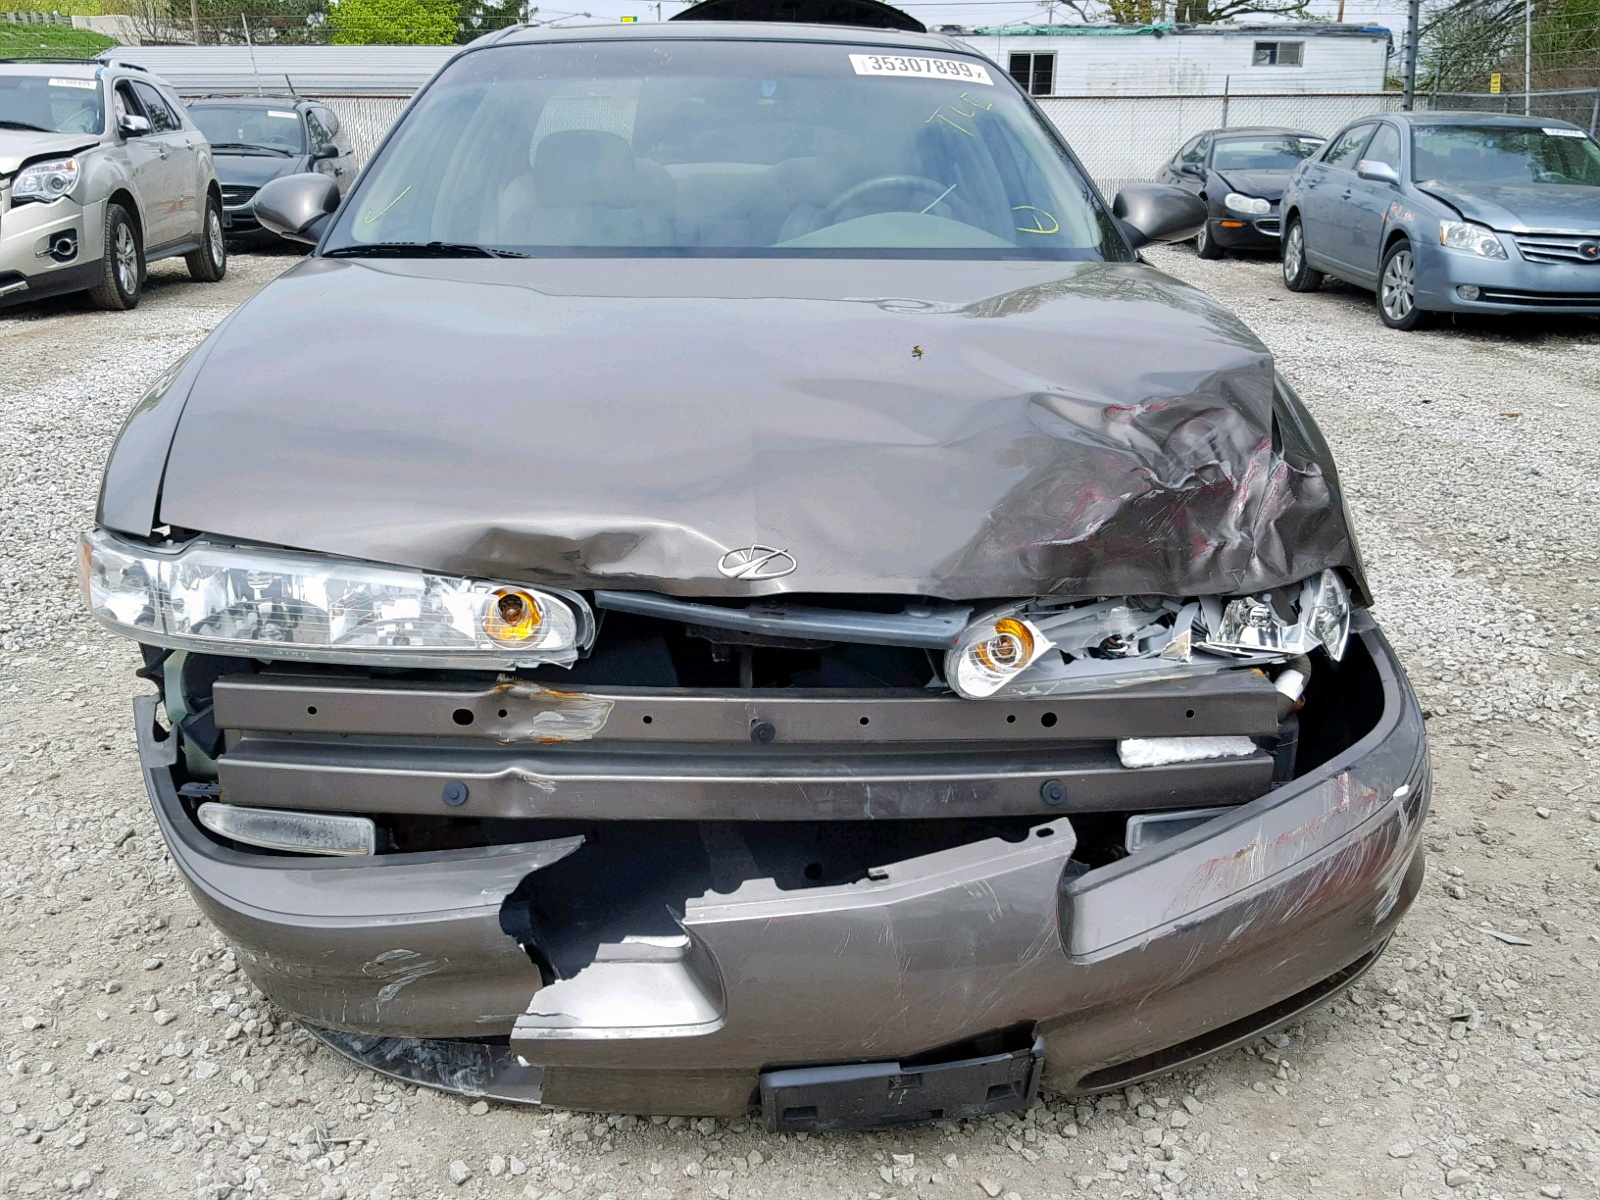 hight resolution of  1g3ws52h41f142435 2001 oldsmobile intrigue g 3 5l engine view 1g3ws52h41f142435